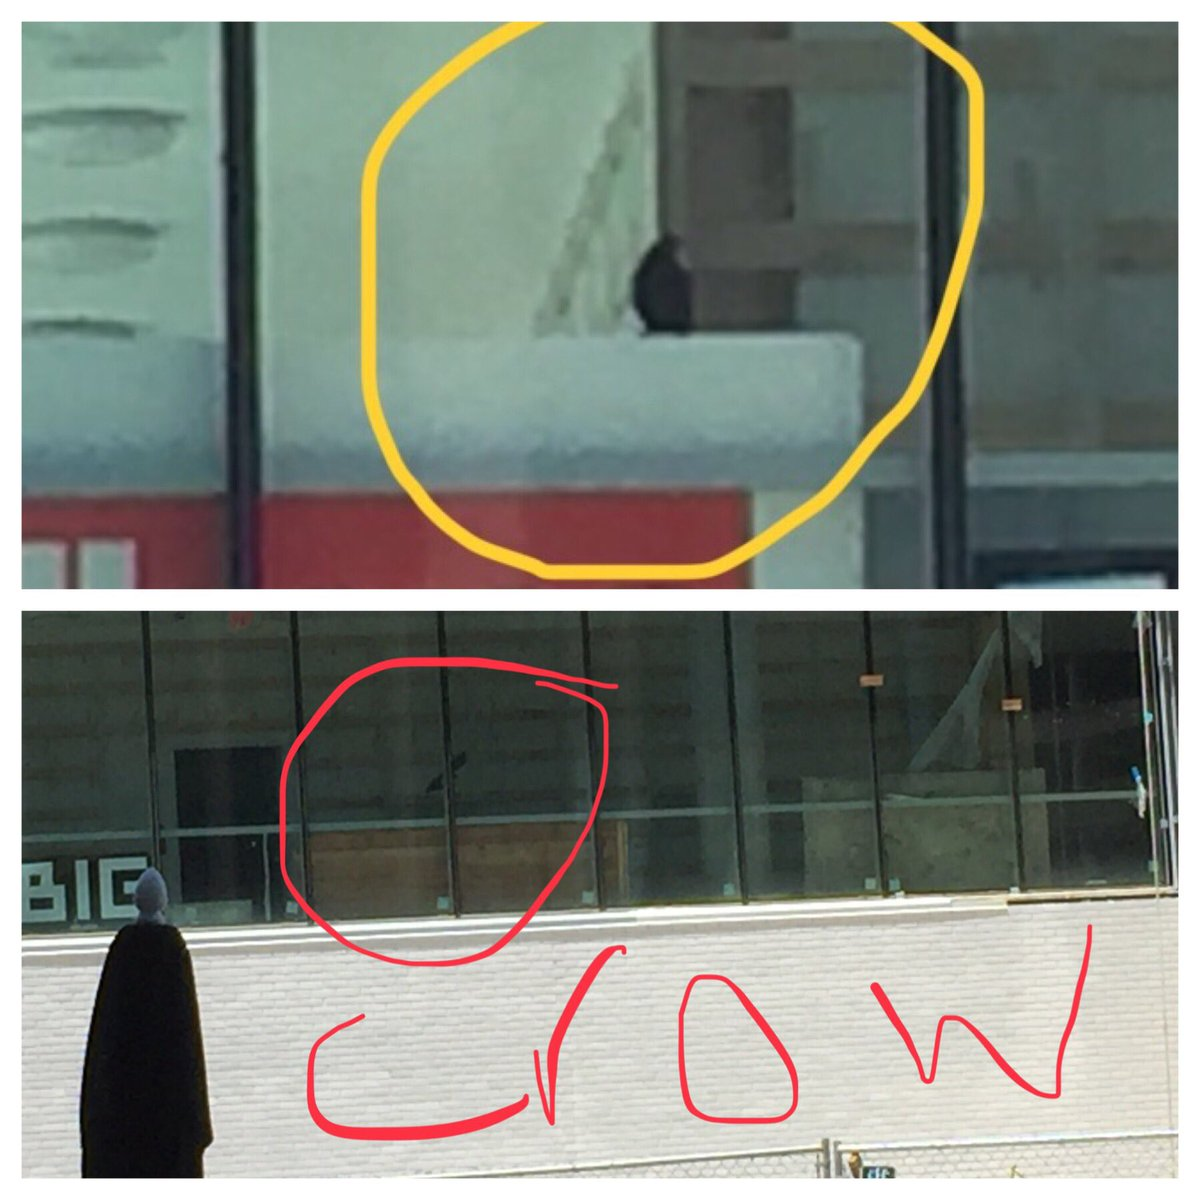 Spied today: construction crew working to get our building ready on time and two crows flying around the library, checking on progress! <a target='_blank' href='http://twitter.com/GilbaneBuilding'>@GilbaneBuilding</a> <a target='_blank' href='http://twitter.com/BIGstertweets'>@BIGstertweets</a> <a target='_blank' href='http://twitter.com/APSFacilities'>@APSFacilities</a> <a target='_blank' href='http://search.twitter.com/search?q=lovehb'><a target='_blank' href='https://twitter.com/hashtag/lovehb?src=hash'>#lovehb</a></a> <a target='_blank' href='http://search.twitter.com/search?q=stratfordrocks'><a target='_blank' href='https://twitter.com/hashtag/stratfordrocks?src=hash'>#stratfordrocks</a></a> <a target='_blank' href='http://search.twitter.com/search?q=TheHeightsBuilding'><a target='_blank' href='https://twitter.com/hashtag/TheHeightsBuilding?src=hash'>#TheHeightsBuilding</a></a> <a target='_blank' href='http://twitter.com/StratfordKG'>@StratfordKG</a> <a target='_blank' href='https://t.co/JQOf5nXVNb'>https://t.co/JQOf5nXVNb</a>